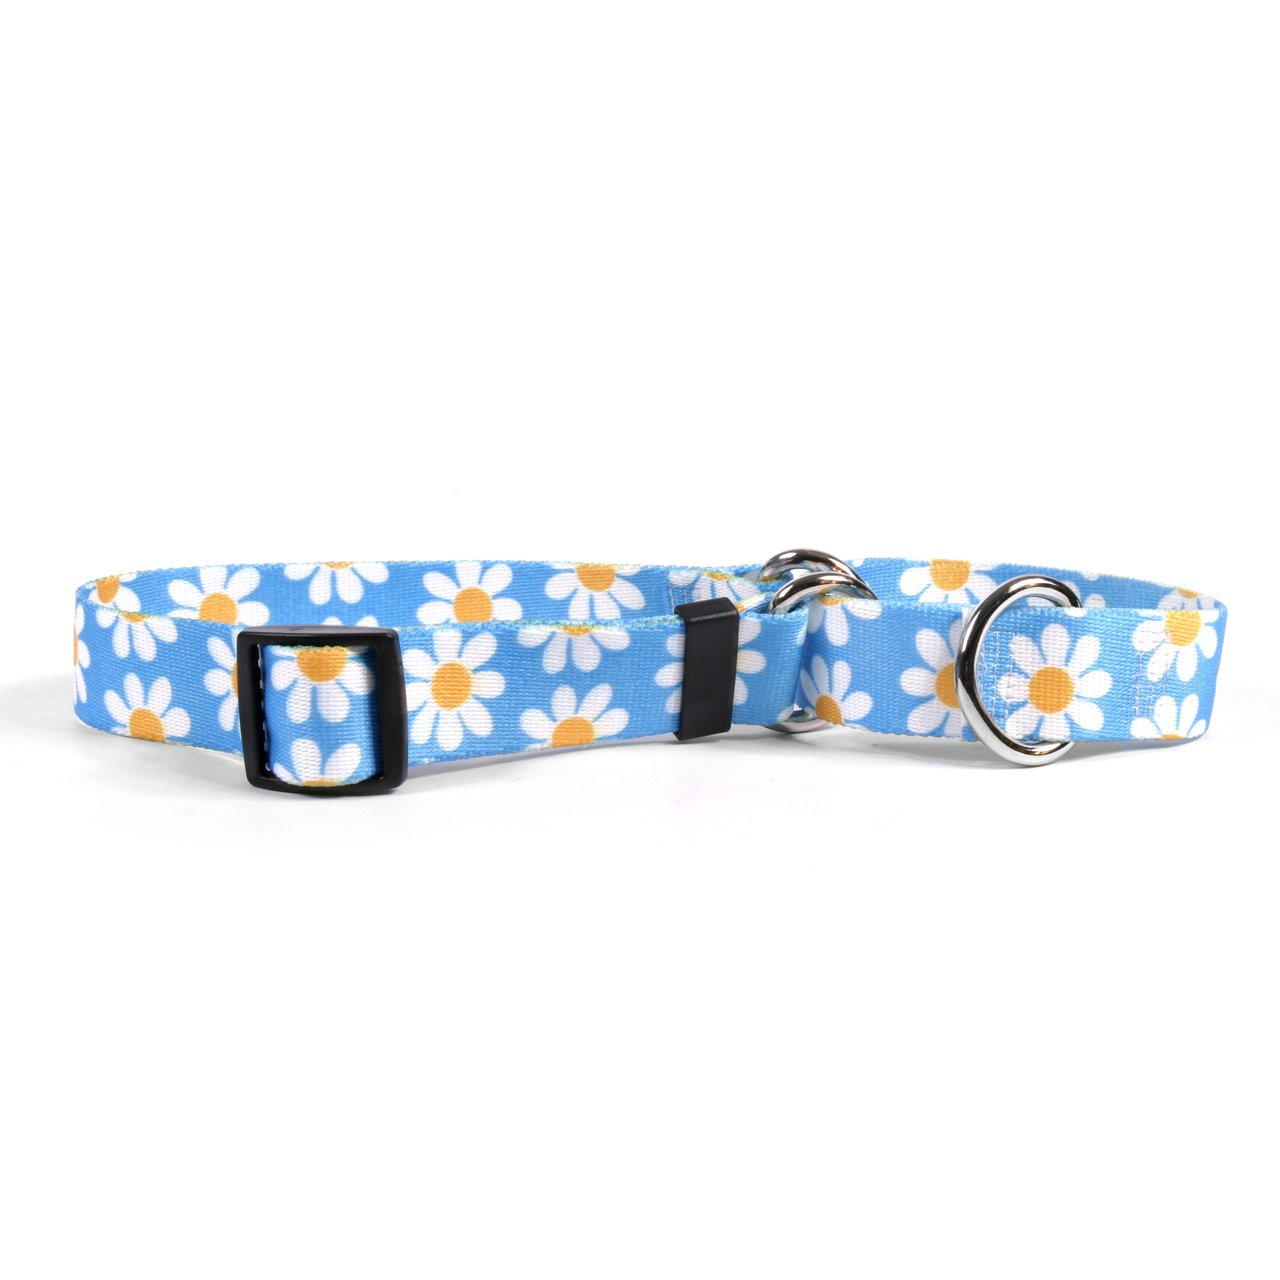 Yellow Dog Design Blue Daisy Martingale Dog Collar 1'' Wide And Fits Neck 14 To 20'', Medium